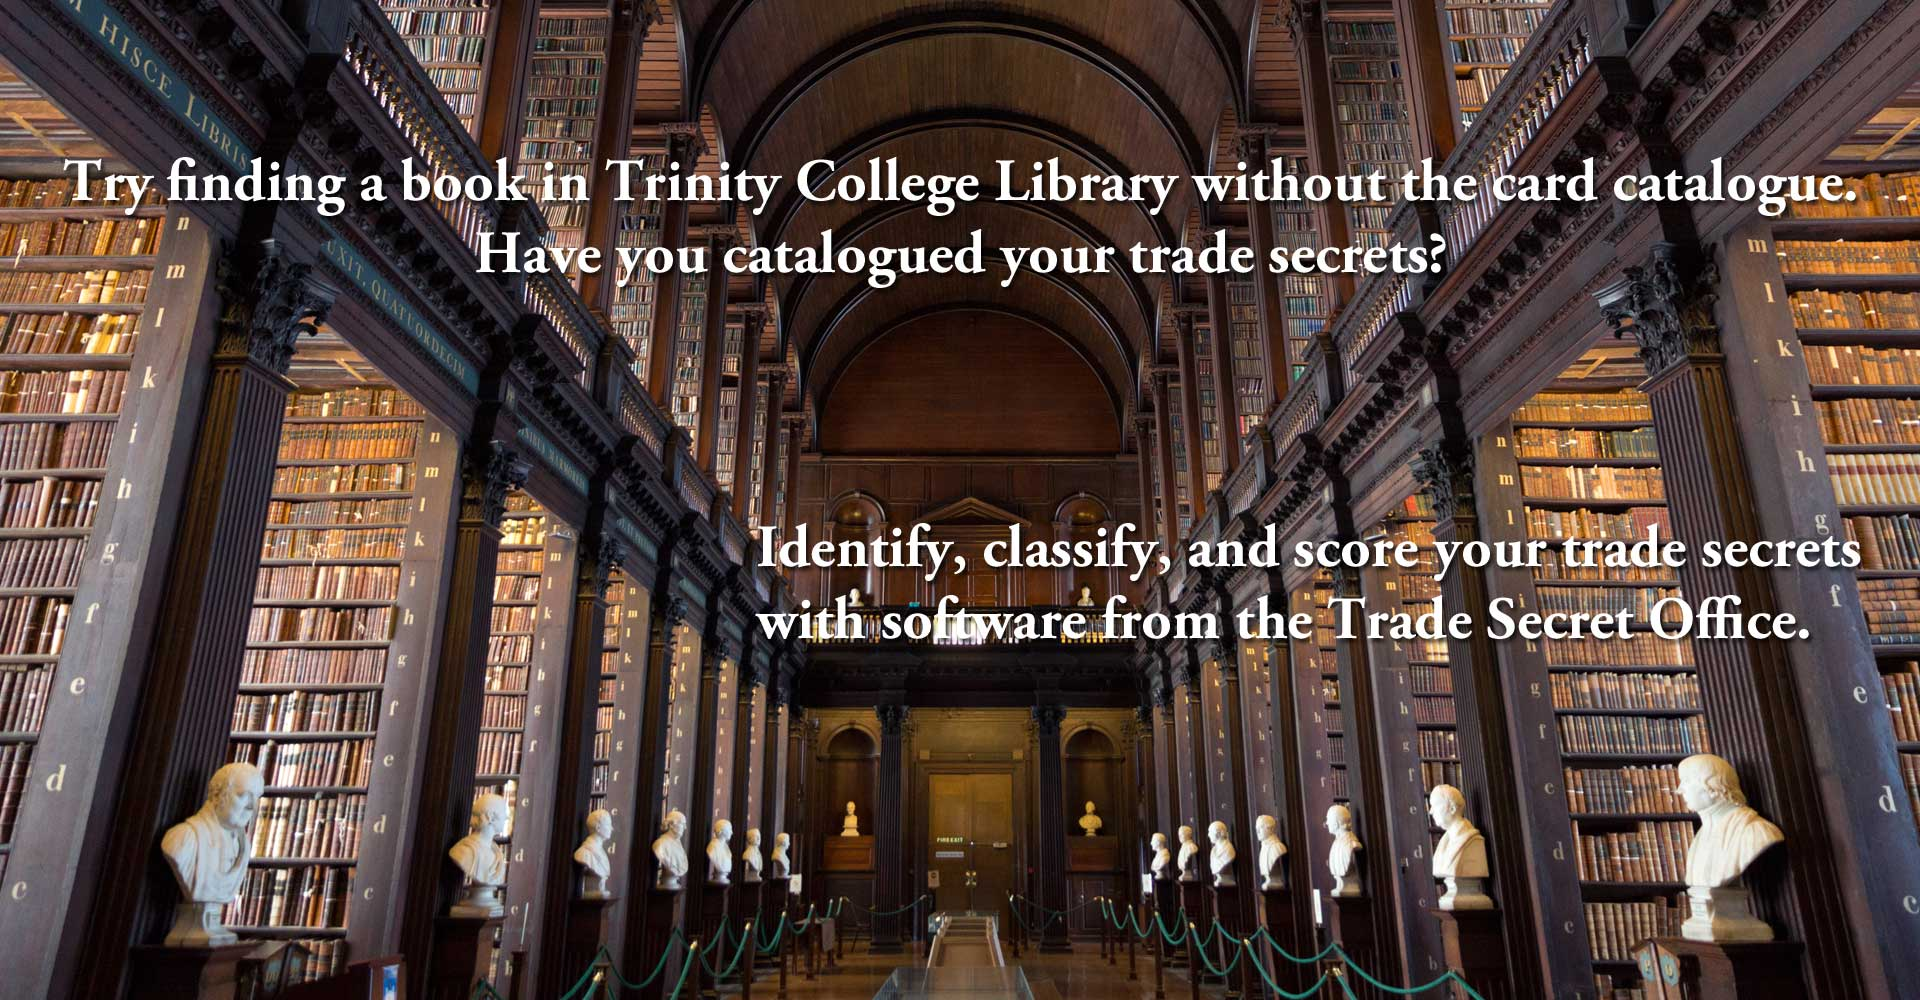 Try finding a book in Trinity College Library without the card catalogue. Have you catalogued your trade secrets?